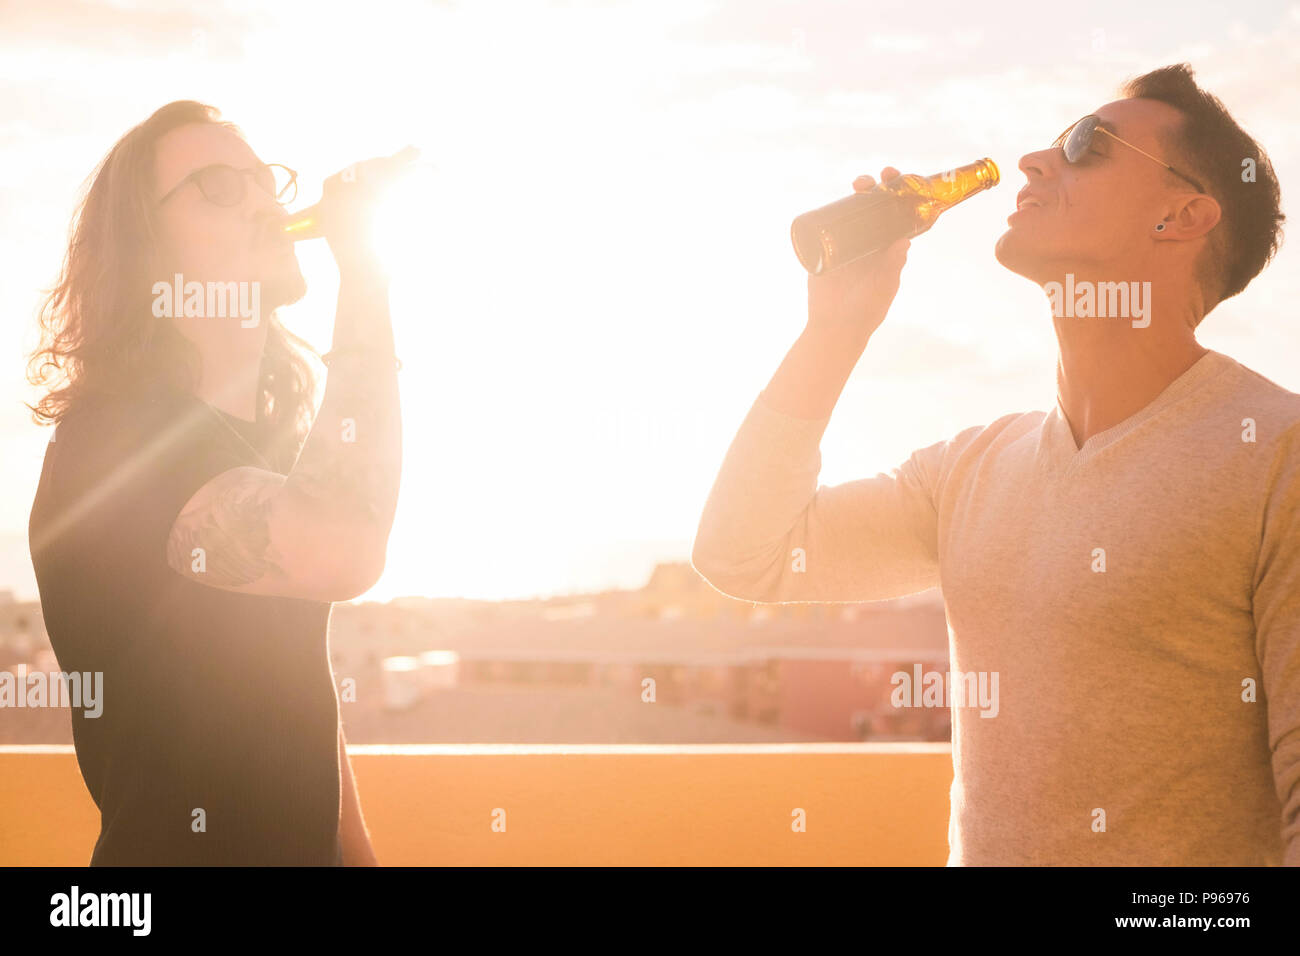 couple of young men drinking beer together under the sunset sunlight. bright image for beautiful males models in happiness and outdoor leisure activit - Stock Image